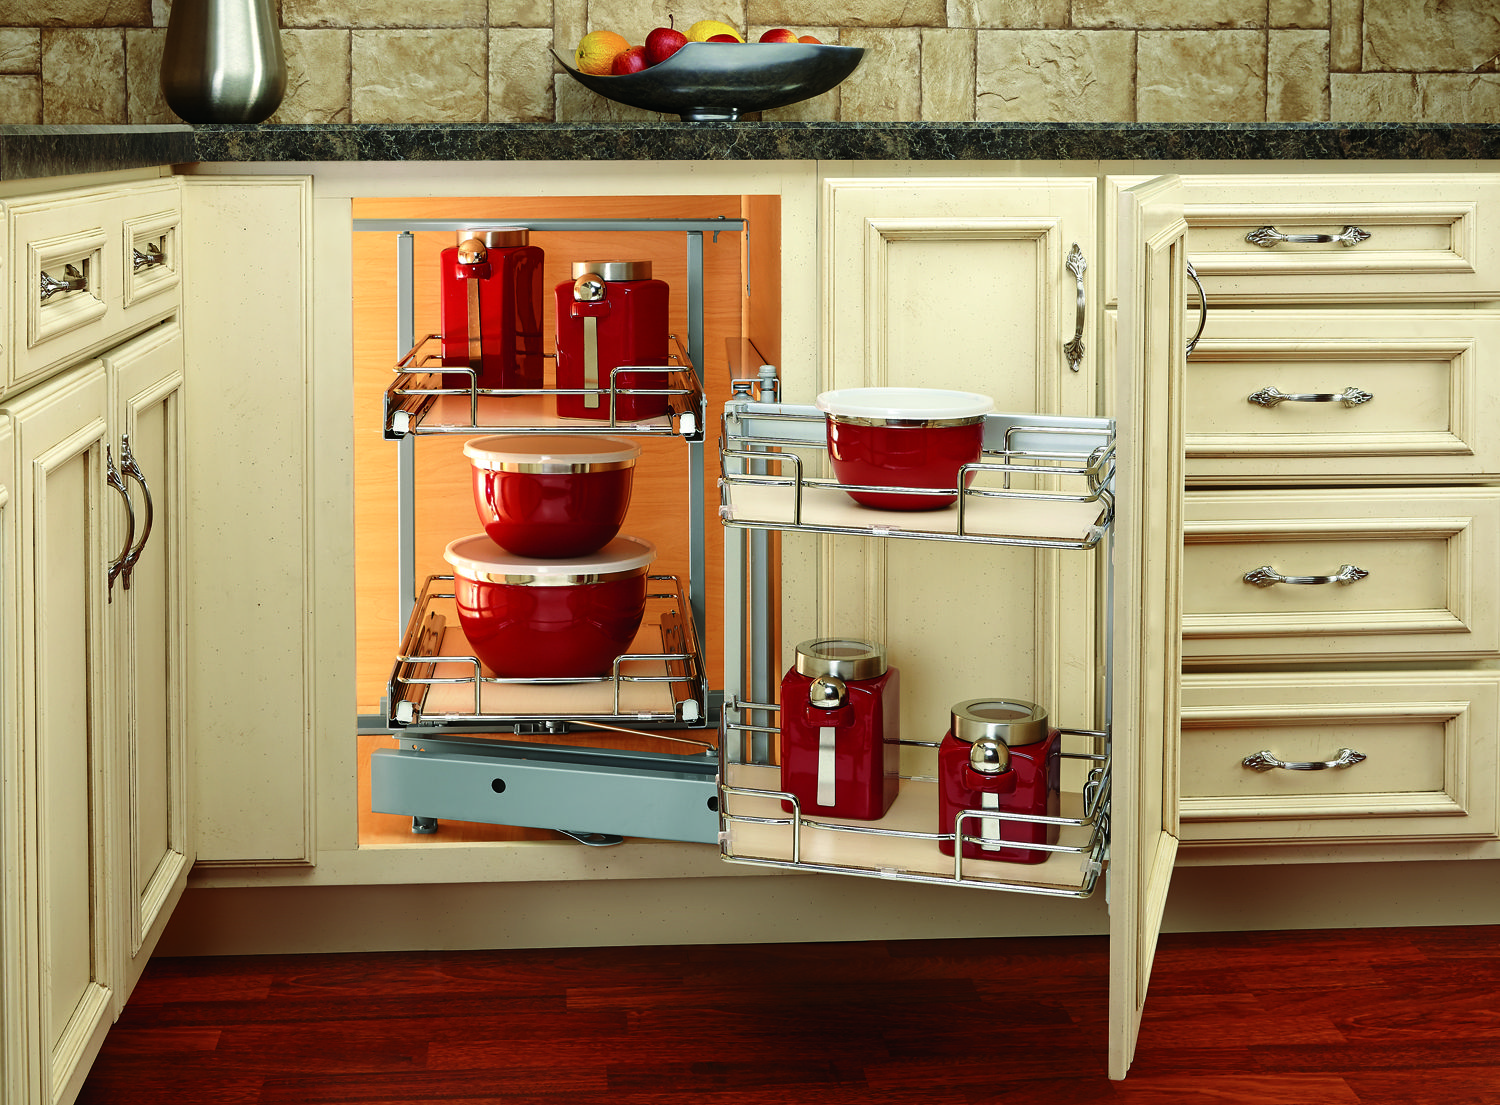 Optimize Your Storage With This Luxurious 599 Series Blind Corner Organizer By Rev A Shelf As Corner Kitchen Cabinet Blind Corner Cabinet New Kitchen Cabinets